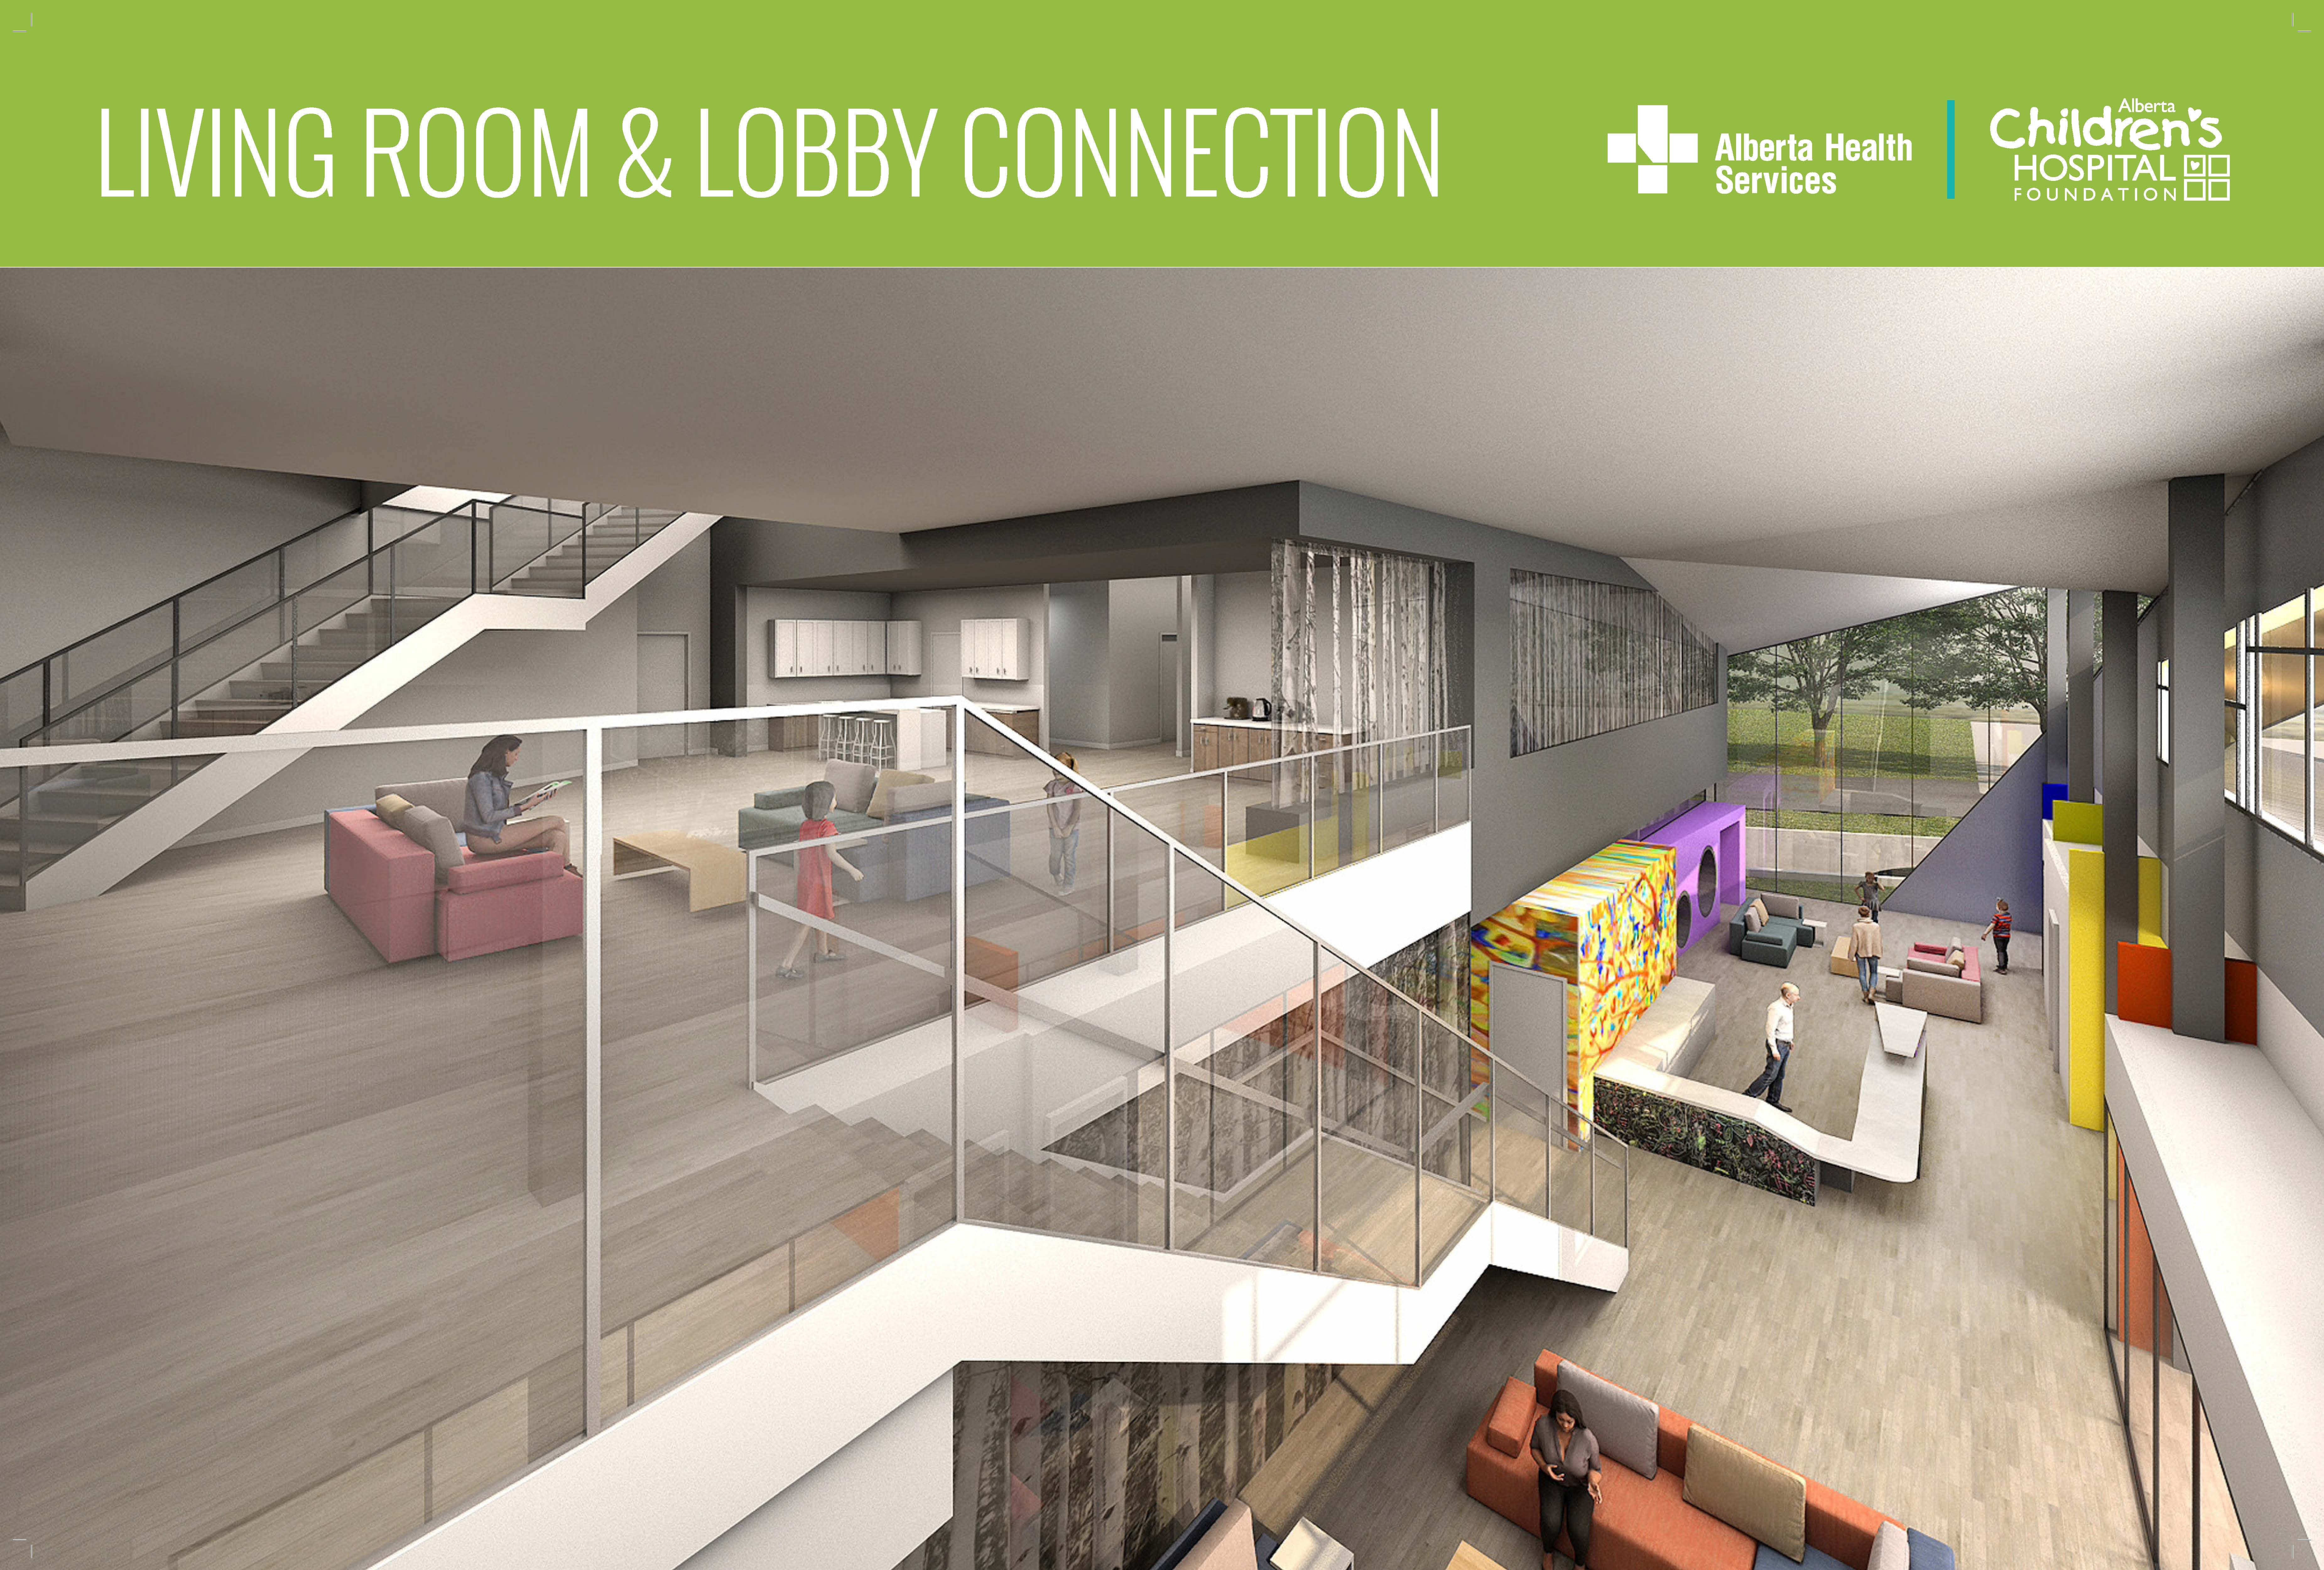 Living room and lobby connection